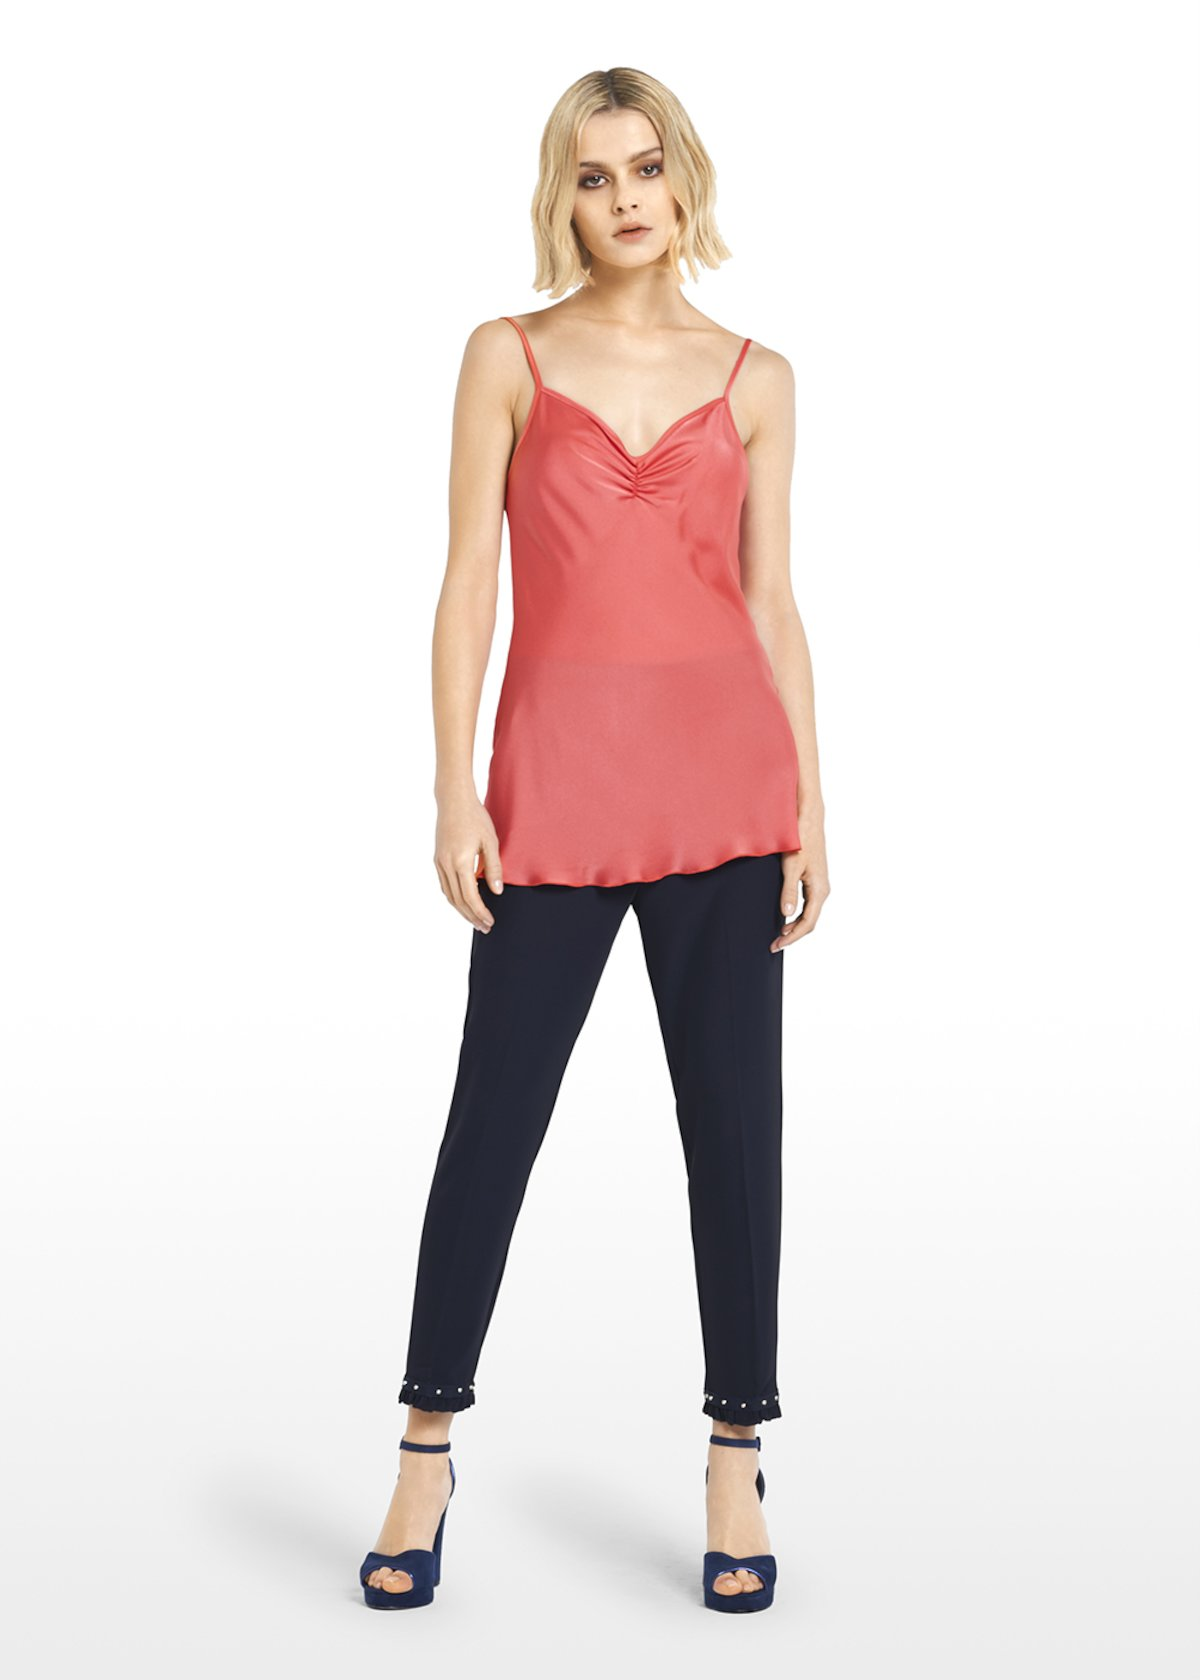 Thil coral Top with pleat detail at neckline - Flamingo - Woman - Category image